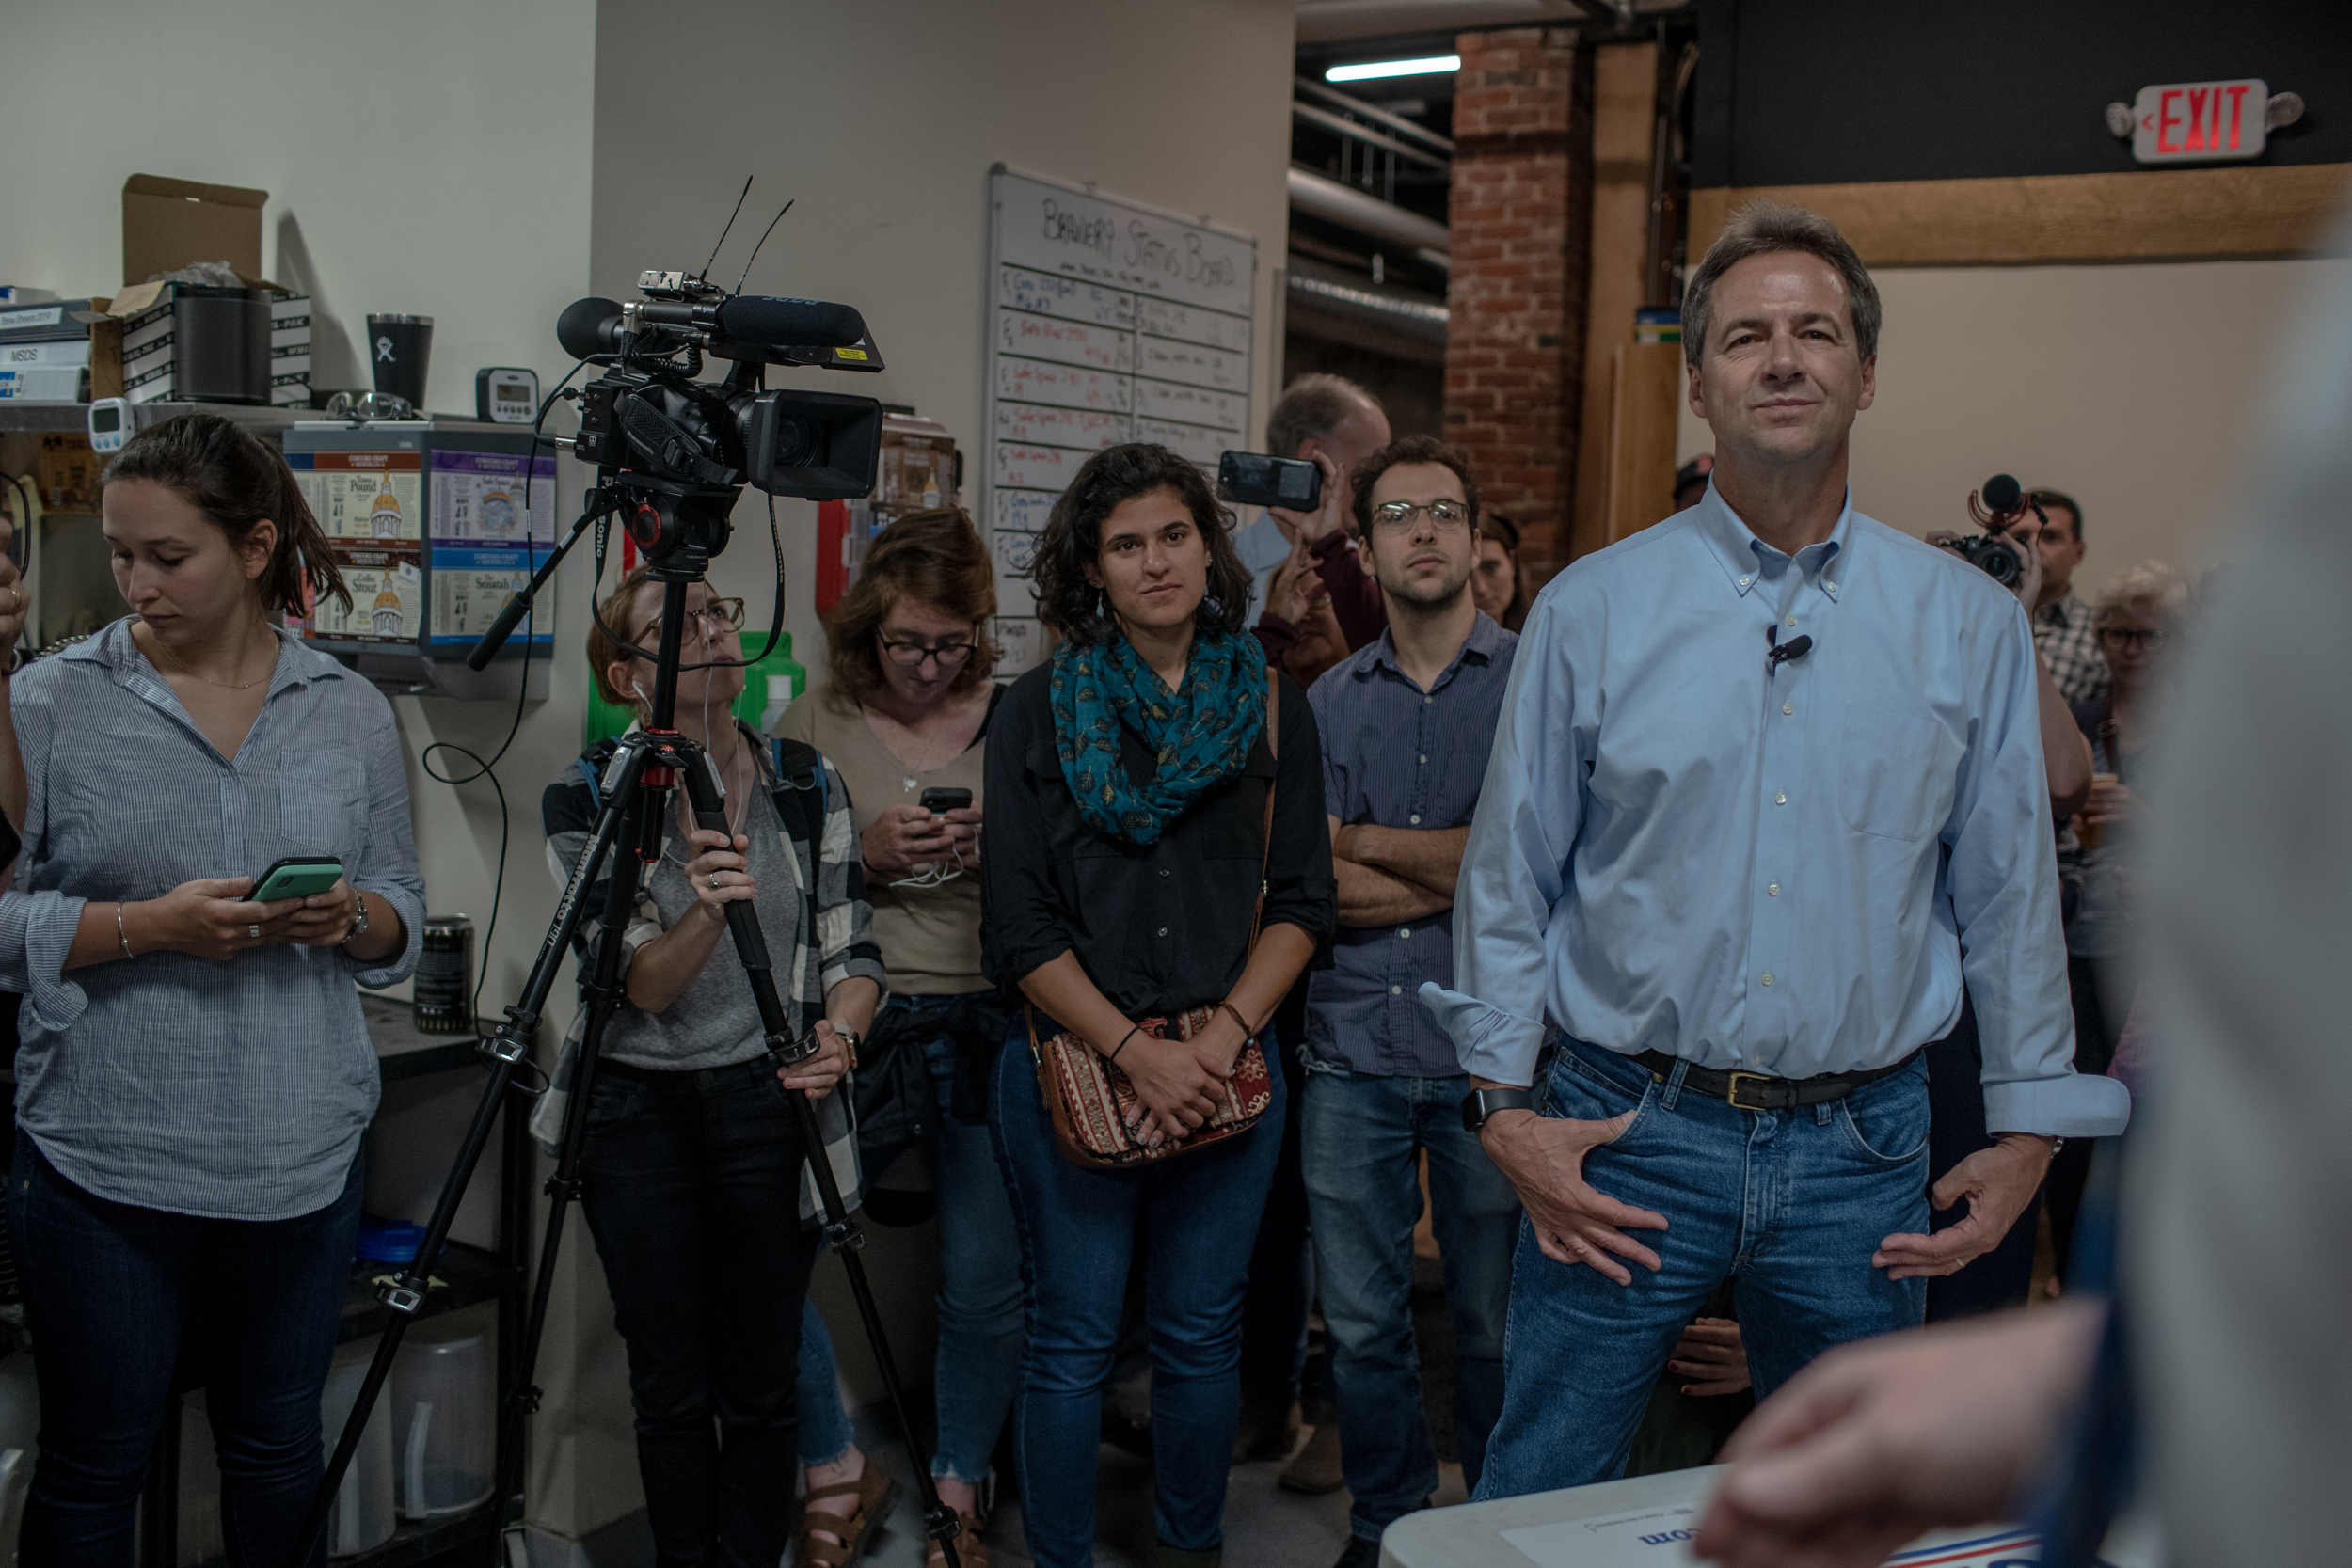 Gov. Steve Bullock of Montana visited and addressed a gathering of people at the Concord Craft Brewing Company in Concord, New Hampshire on Friday, June 21, 2019. The stop was one of several over two days during Bullock's first visit to the state as a presidential candidate. 